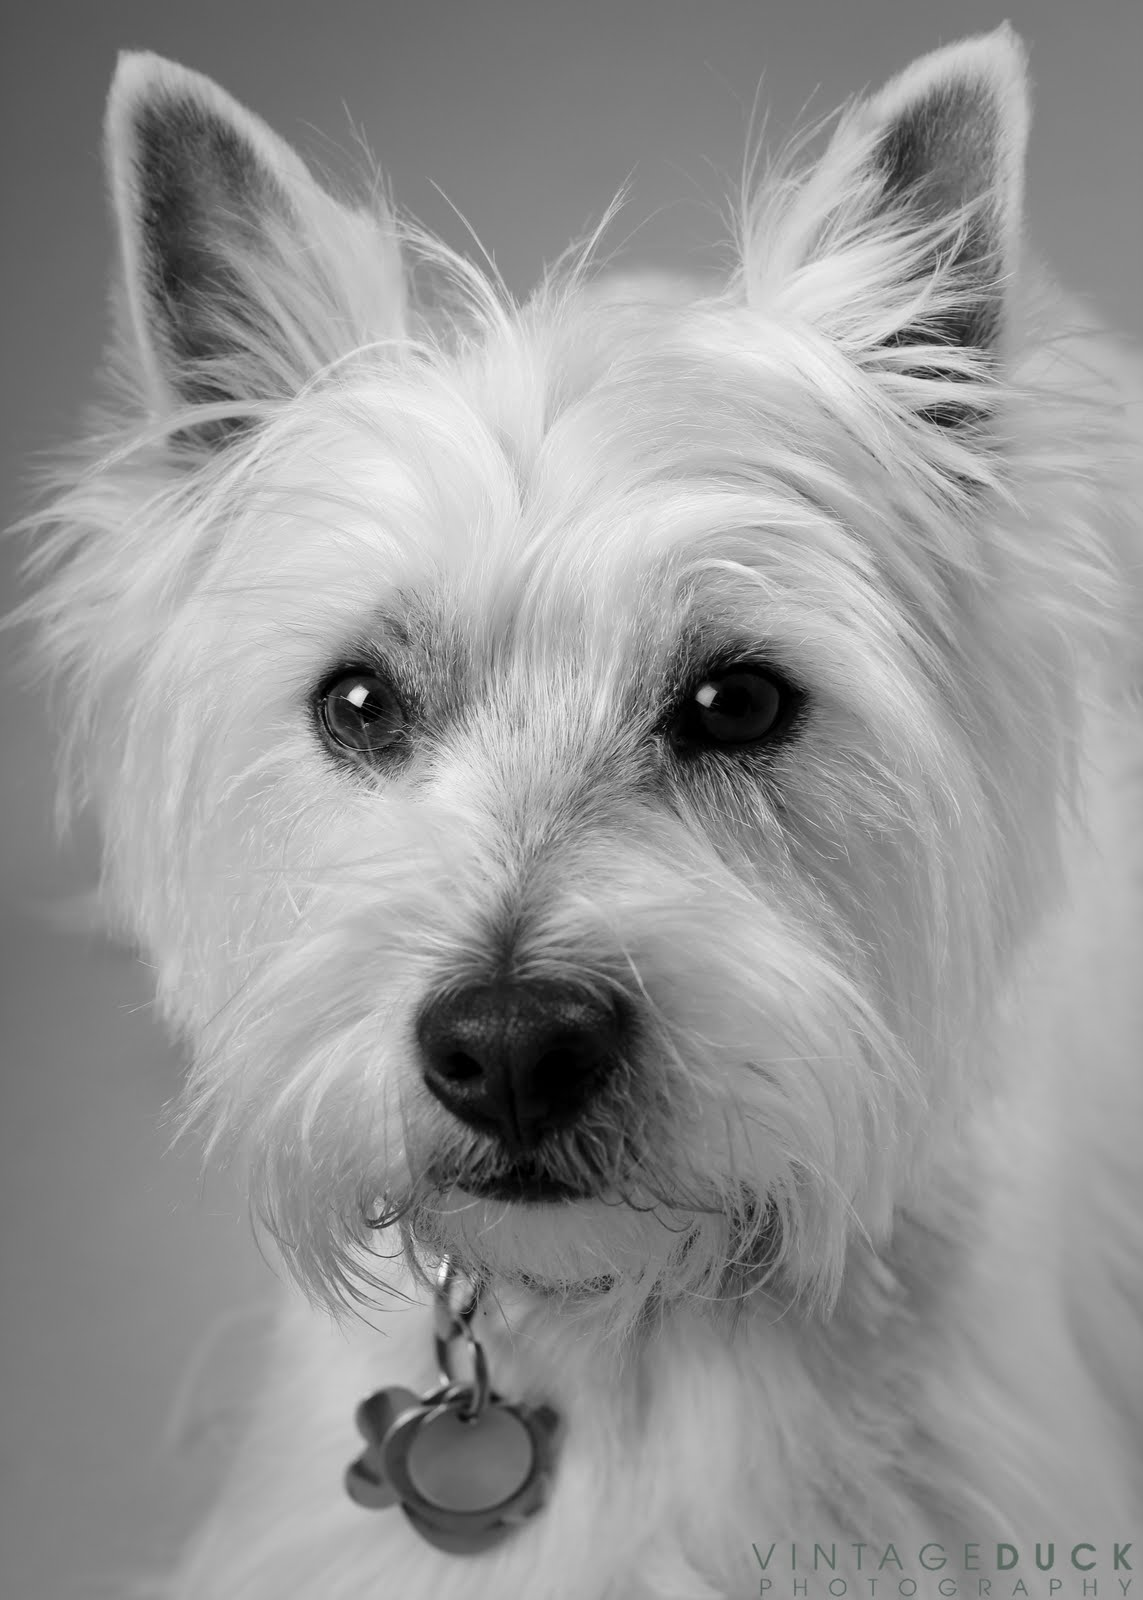 Vintage Duck Photography: Angus the Westie